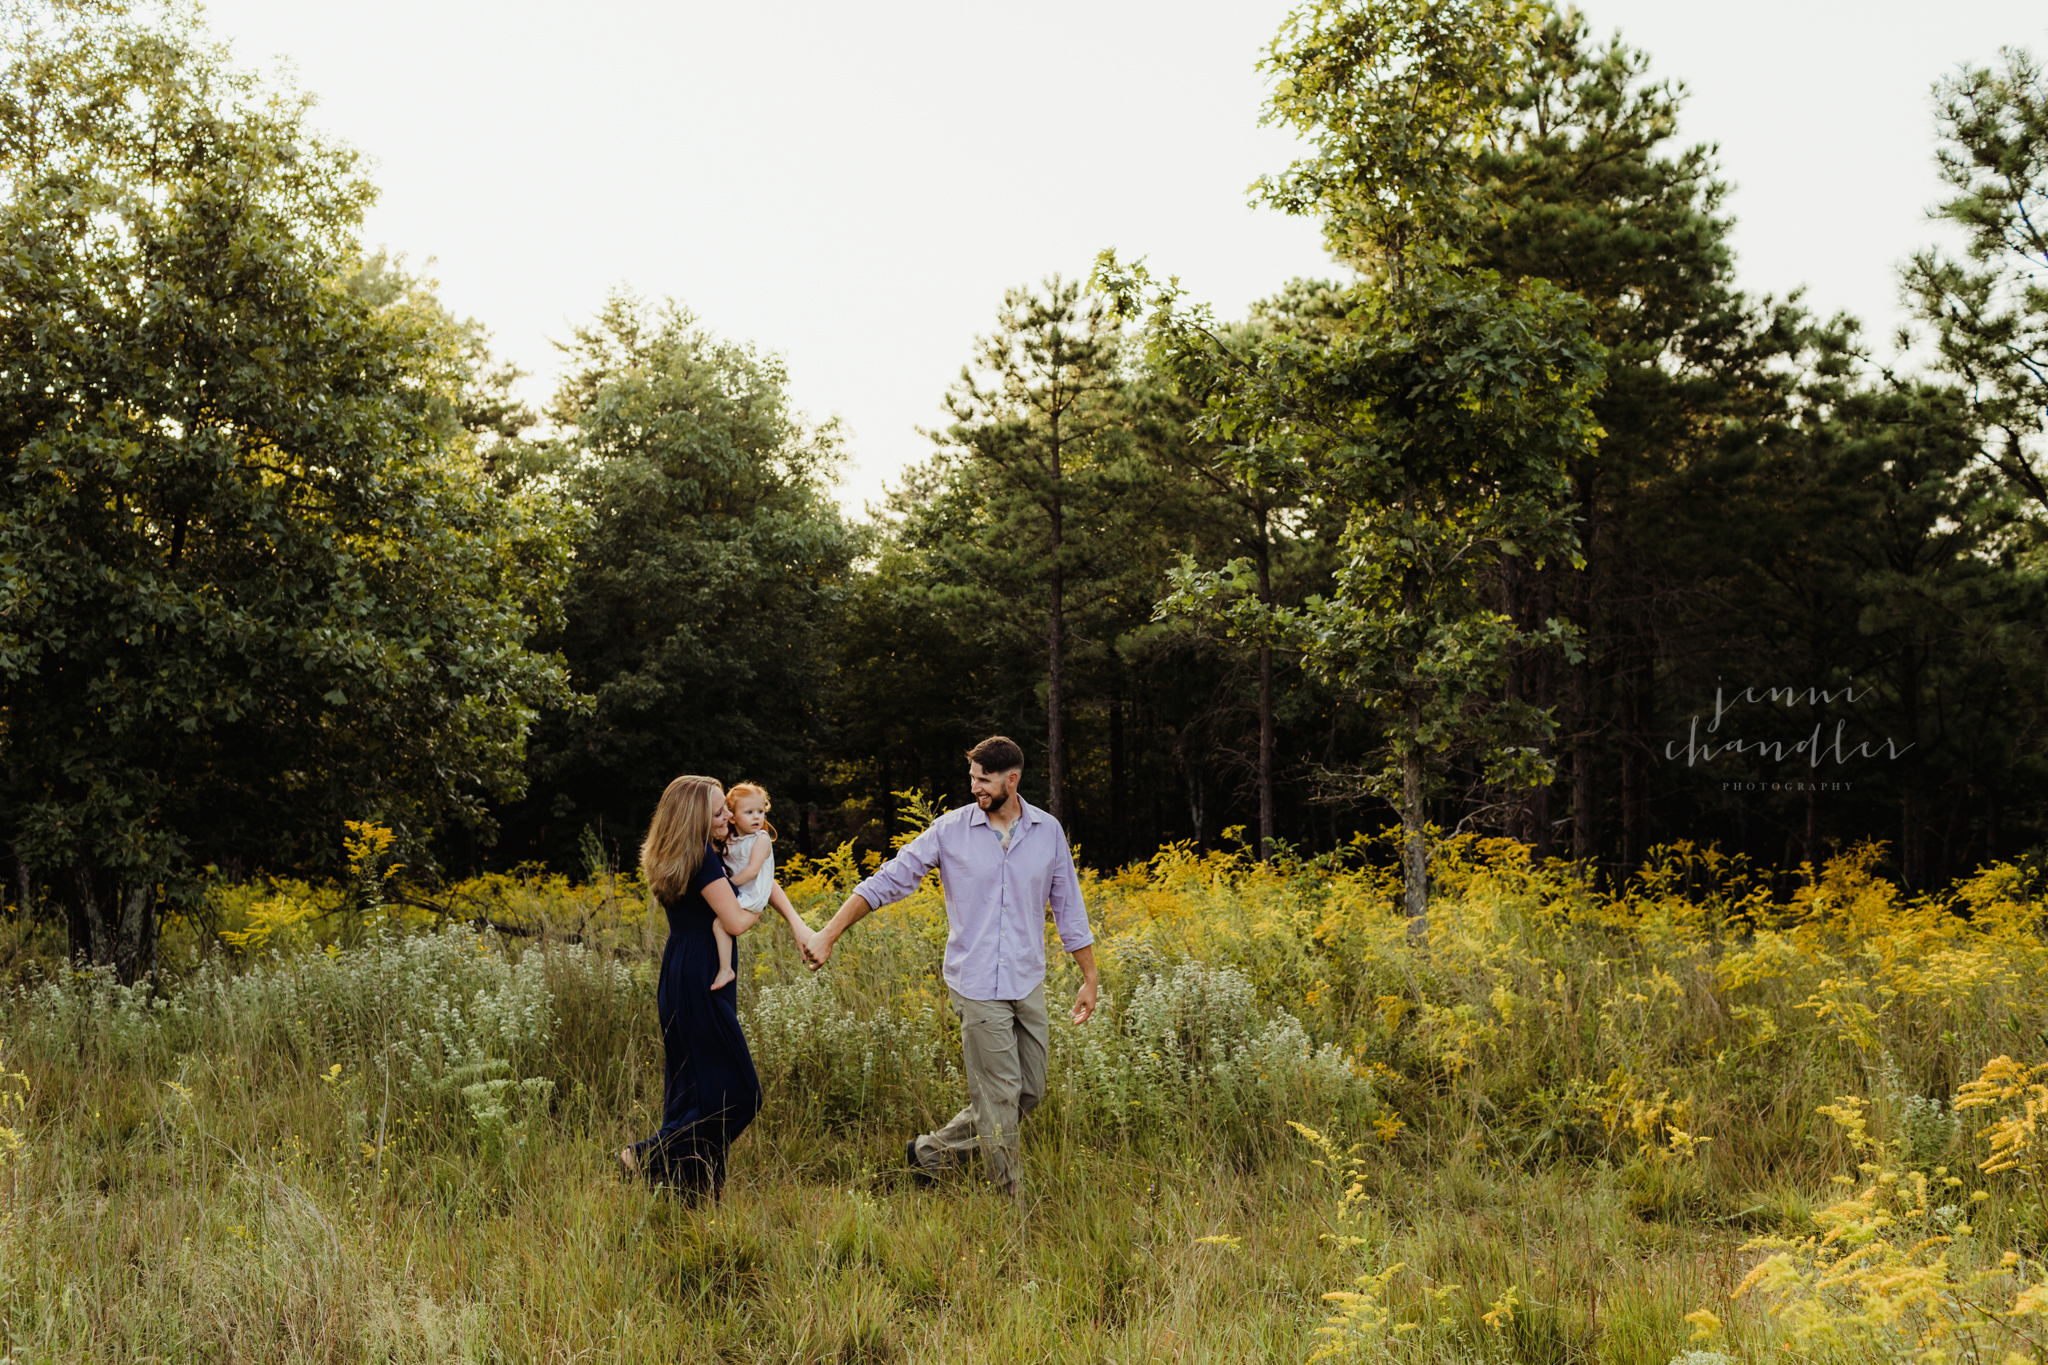 brevardnc_jennichandlerphotography_familysession_mountainview-28.jpg